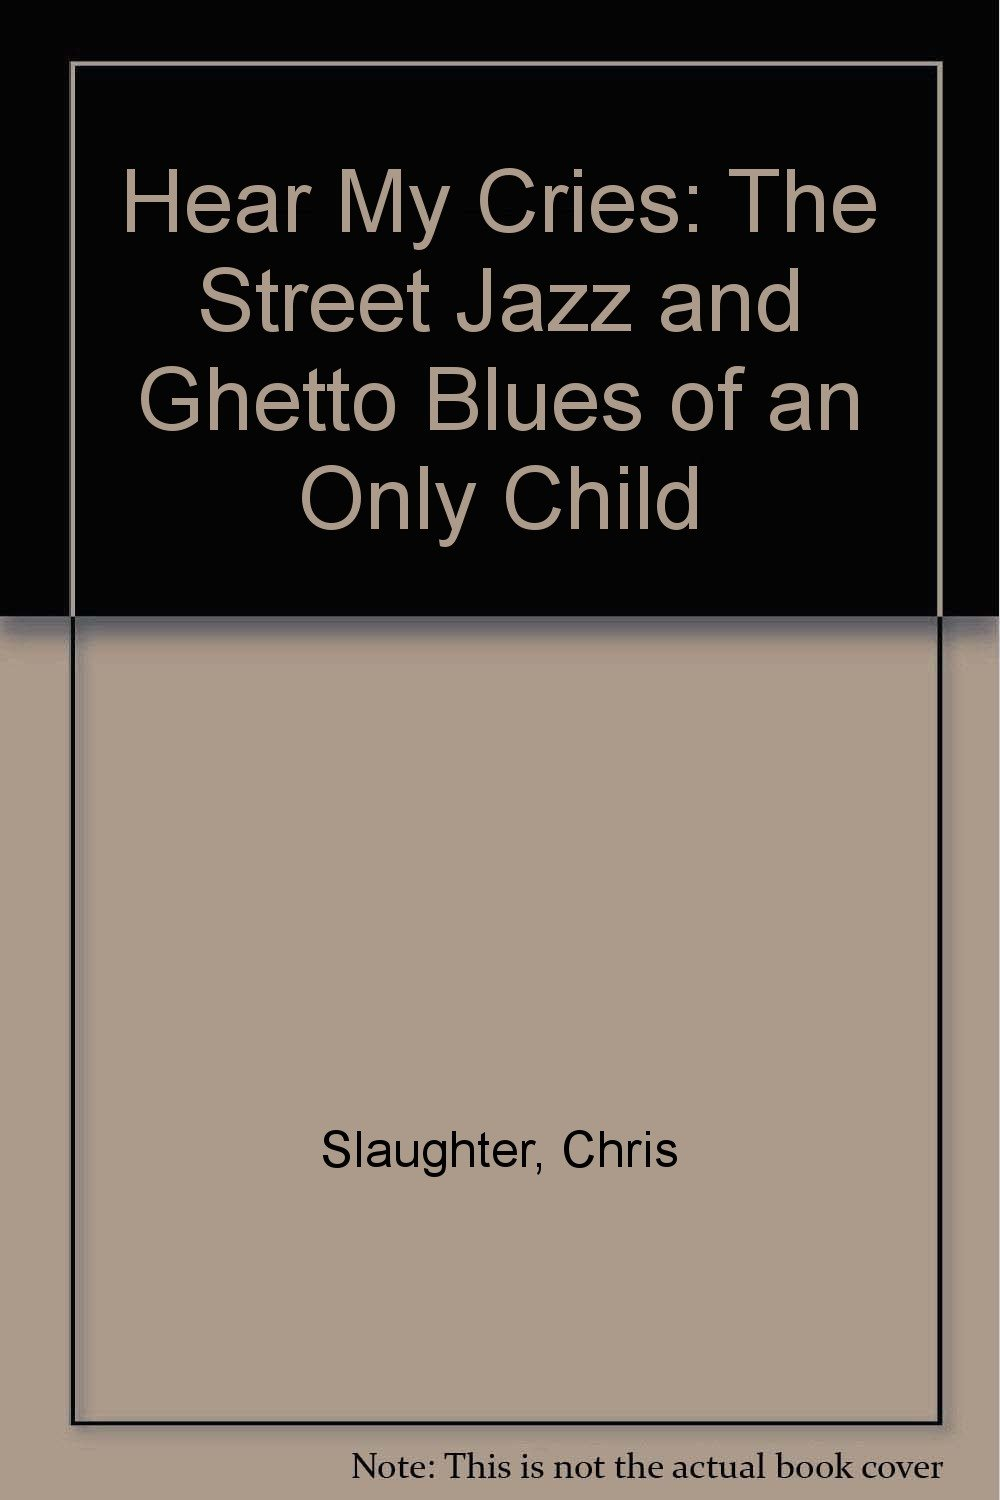 Hear My Cries: The Street Jazz and Ghetto Blues of an Only Child